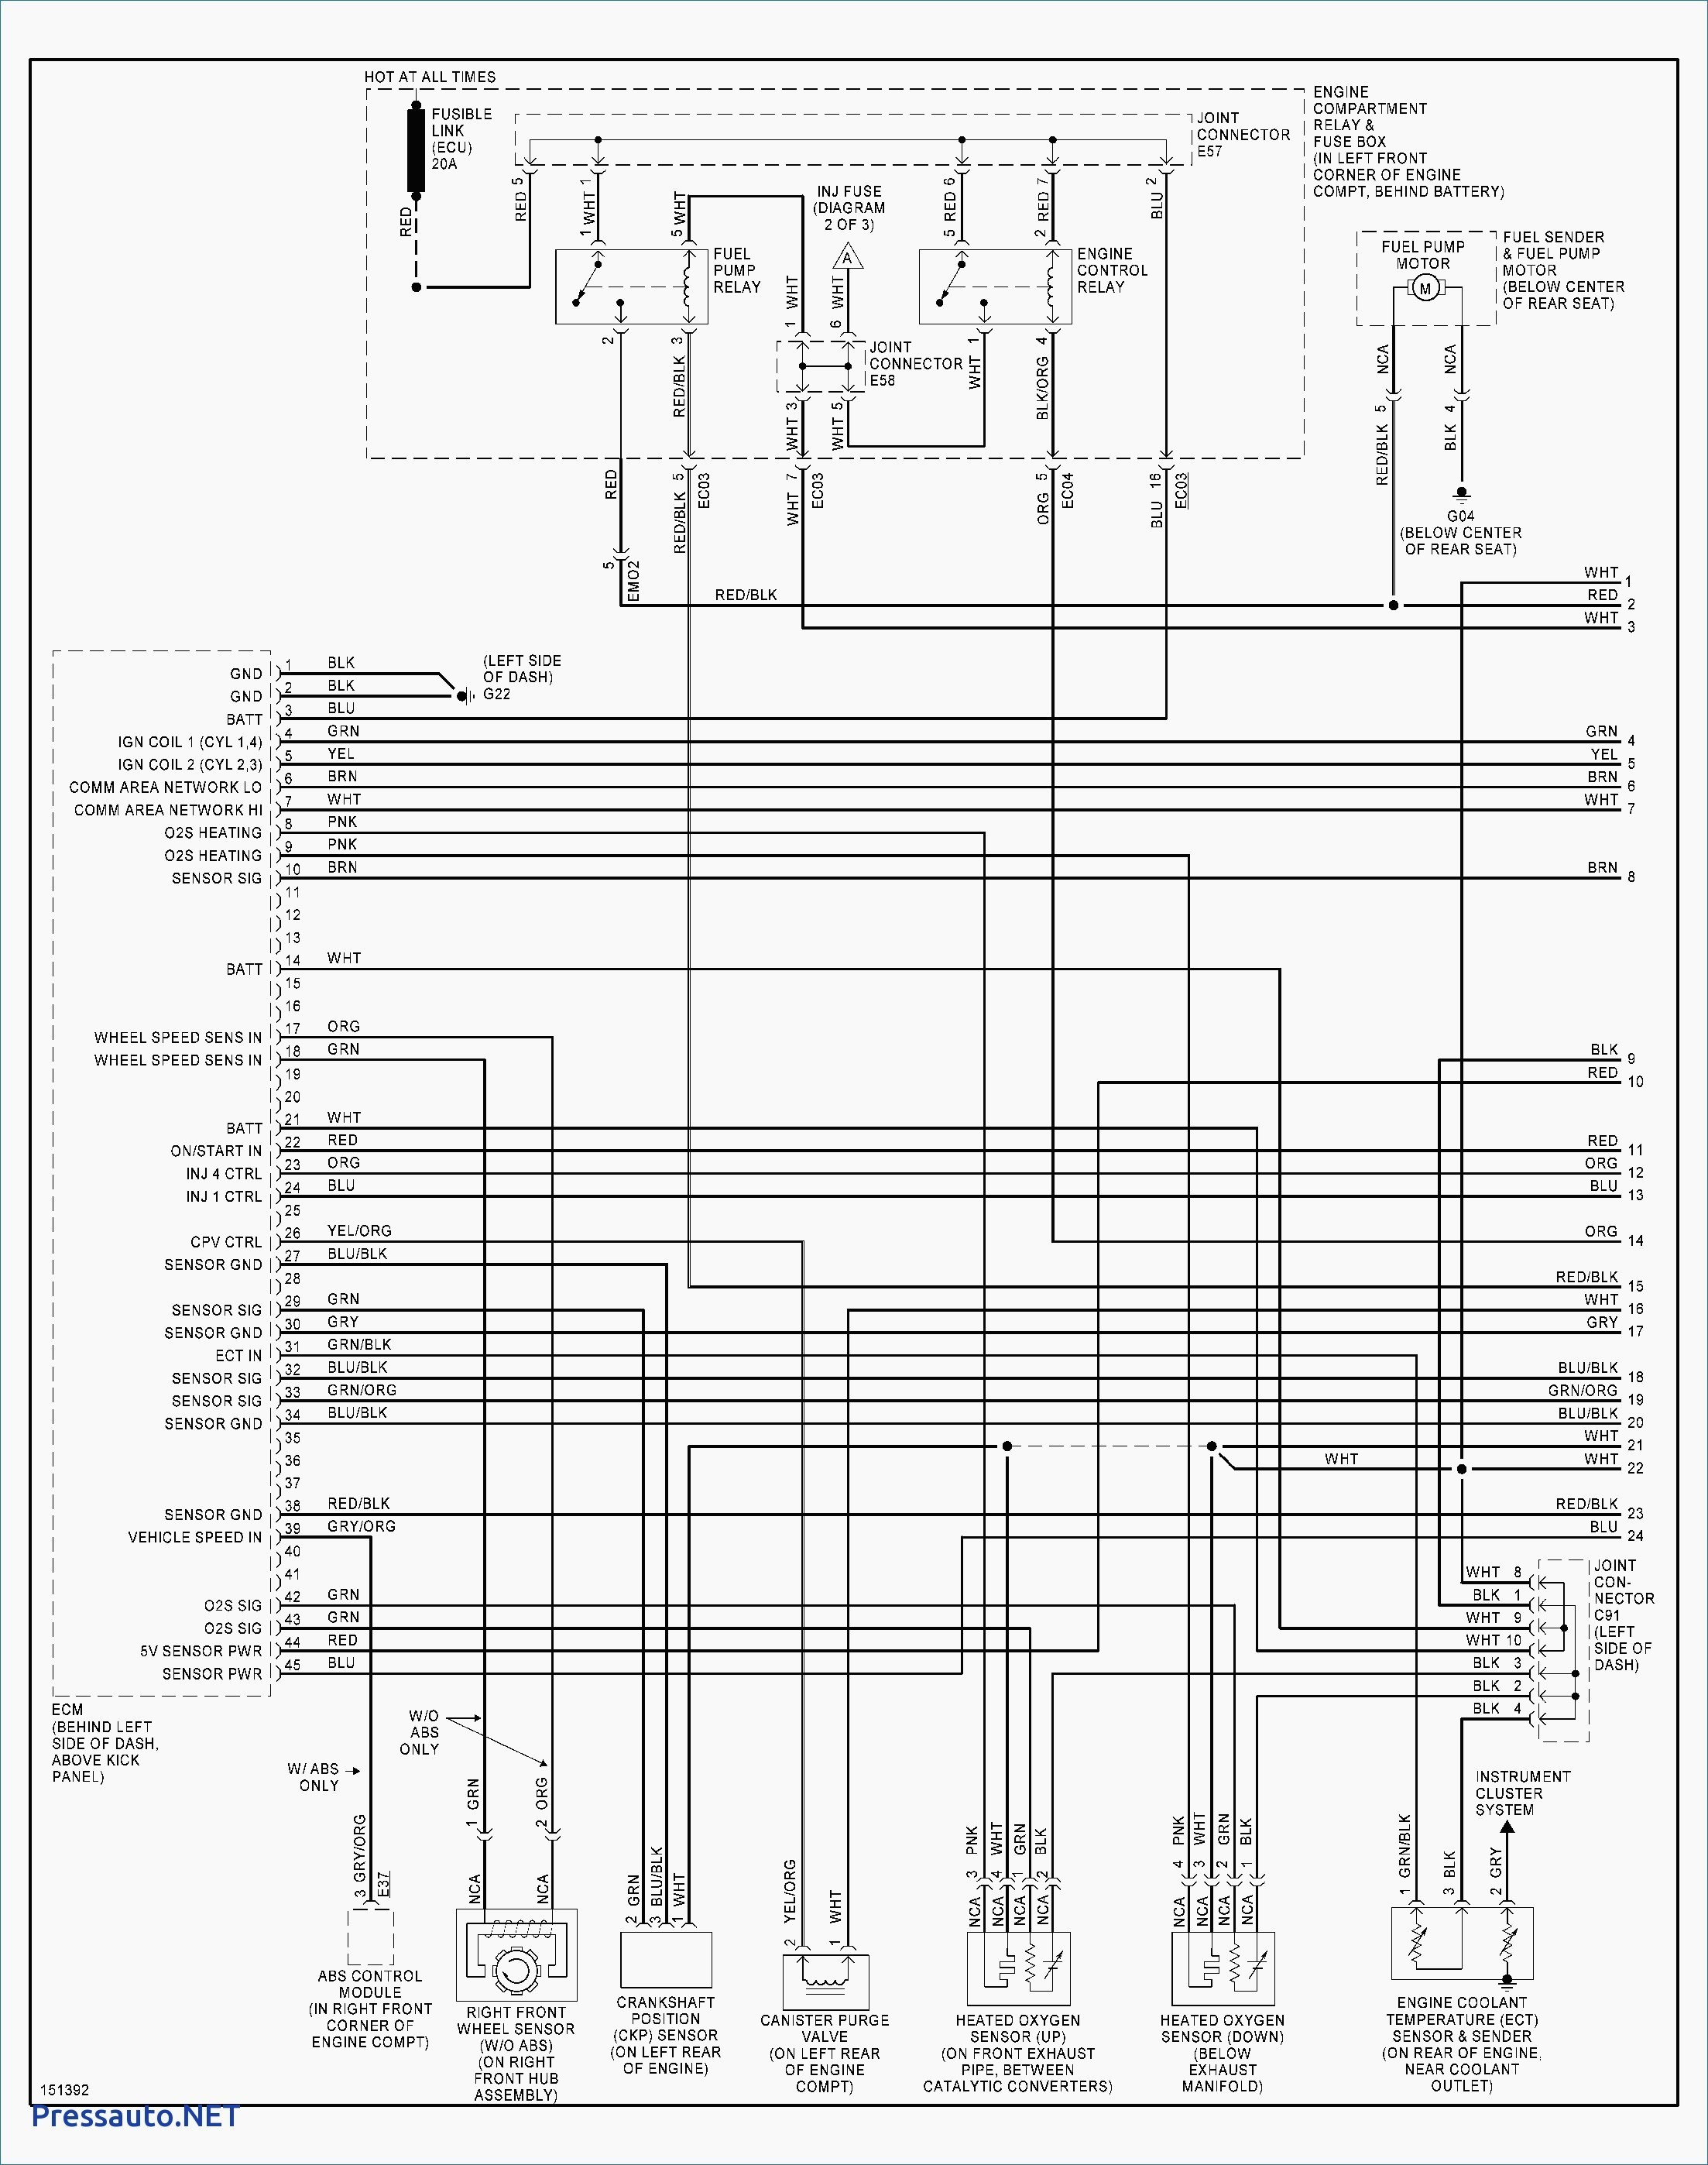 2012 Hyundai Tucson Engine Diagram Great Installation Of Wiring Buick Verano Blog Rh 50 Fuerstliche Weine De 2009 Engines Diagrams